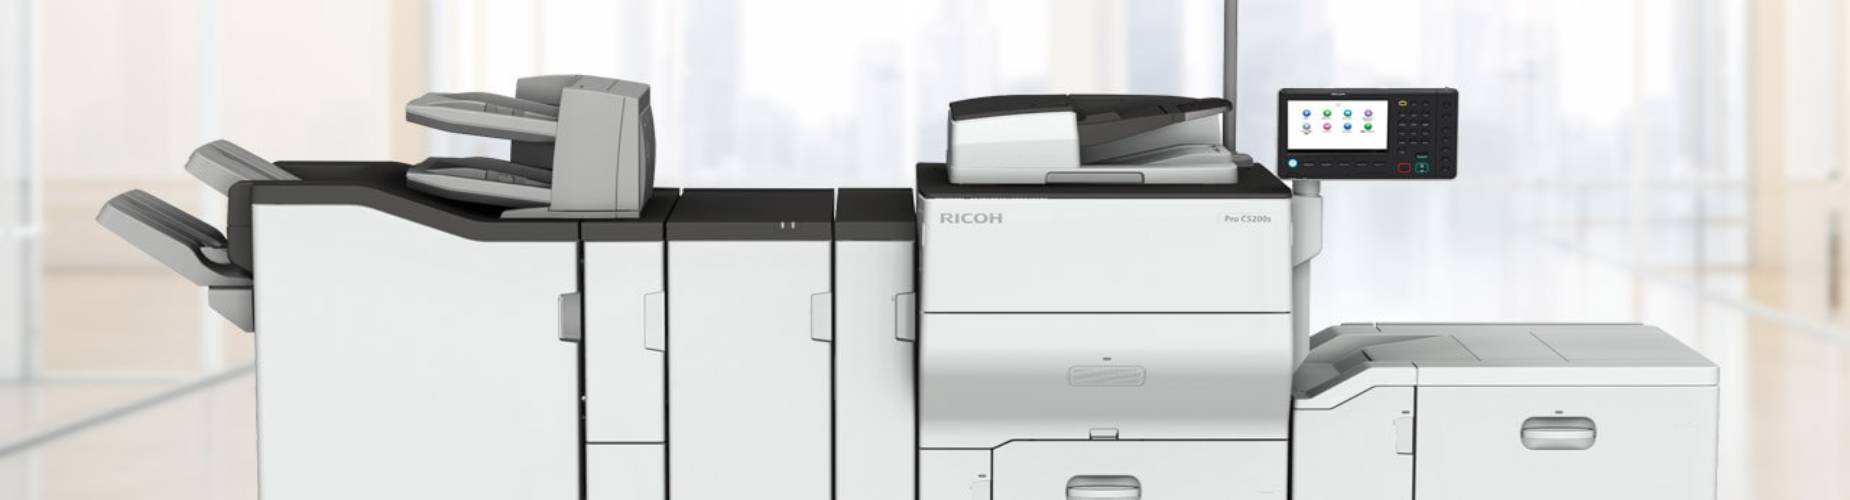 Ricoh Large Format Printer in a large open workspace